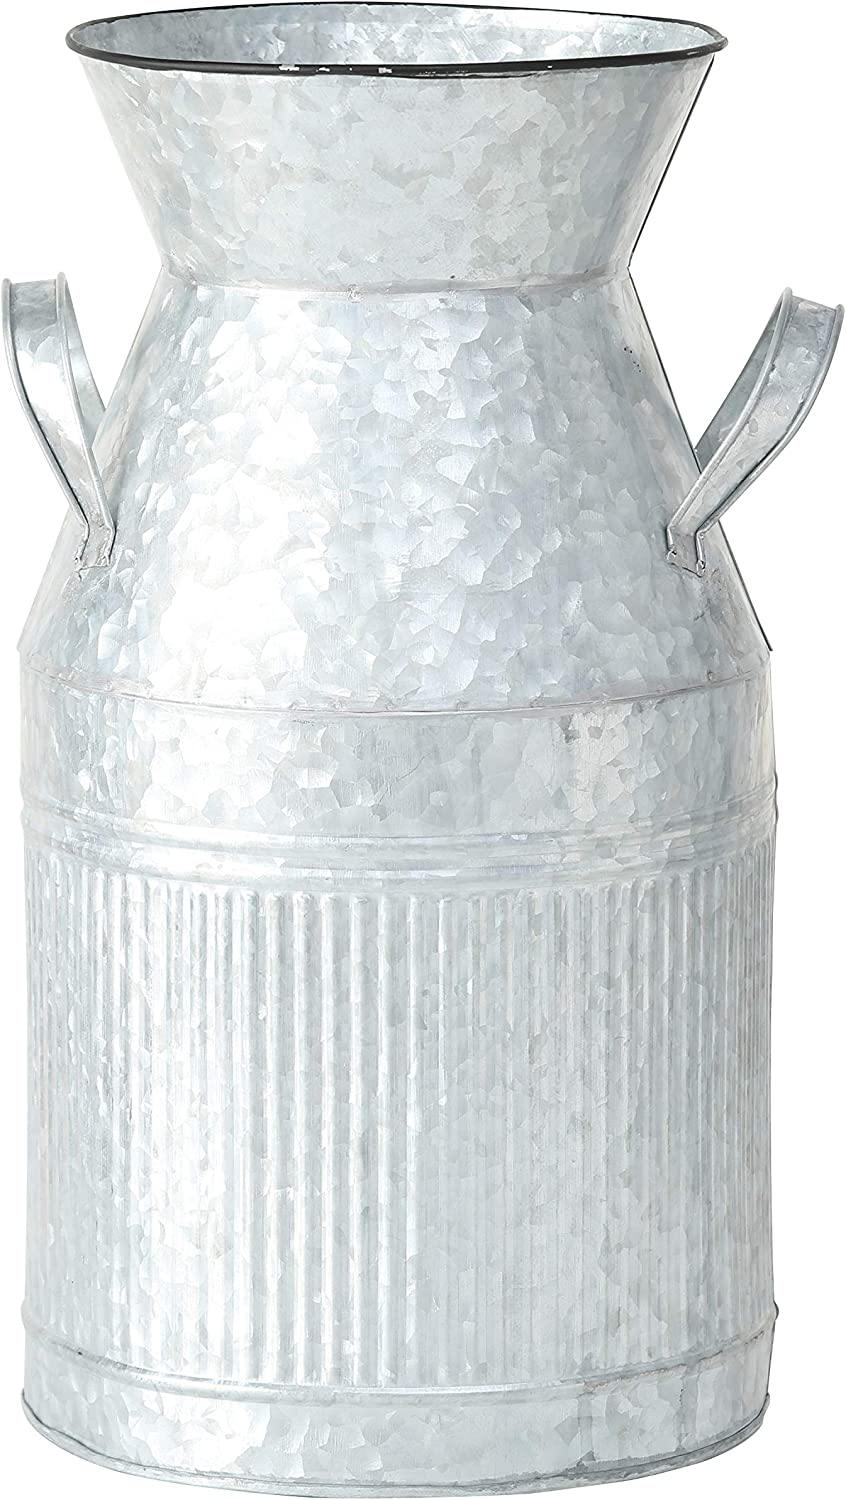 WHW Whole House Worlds Farmers Market Creamery Milk Can, Galvanized, Zinc, Corrugated Details, Metal, 8.75 Diameter x 15.75 Inches Tall (40 cm) Decorative Vase